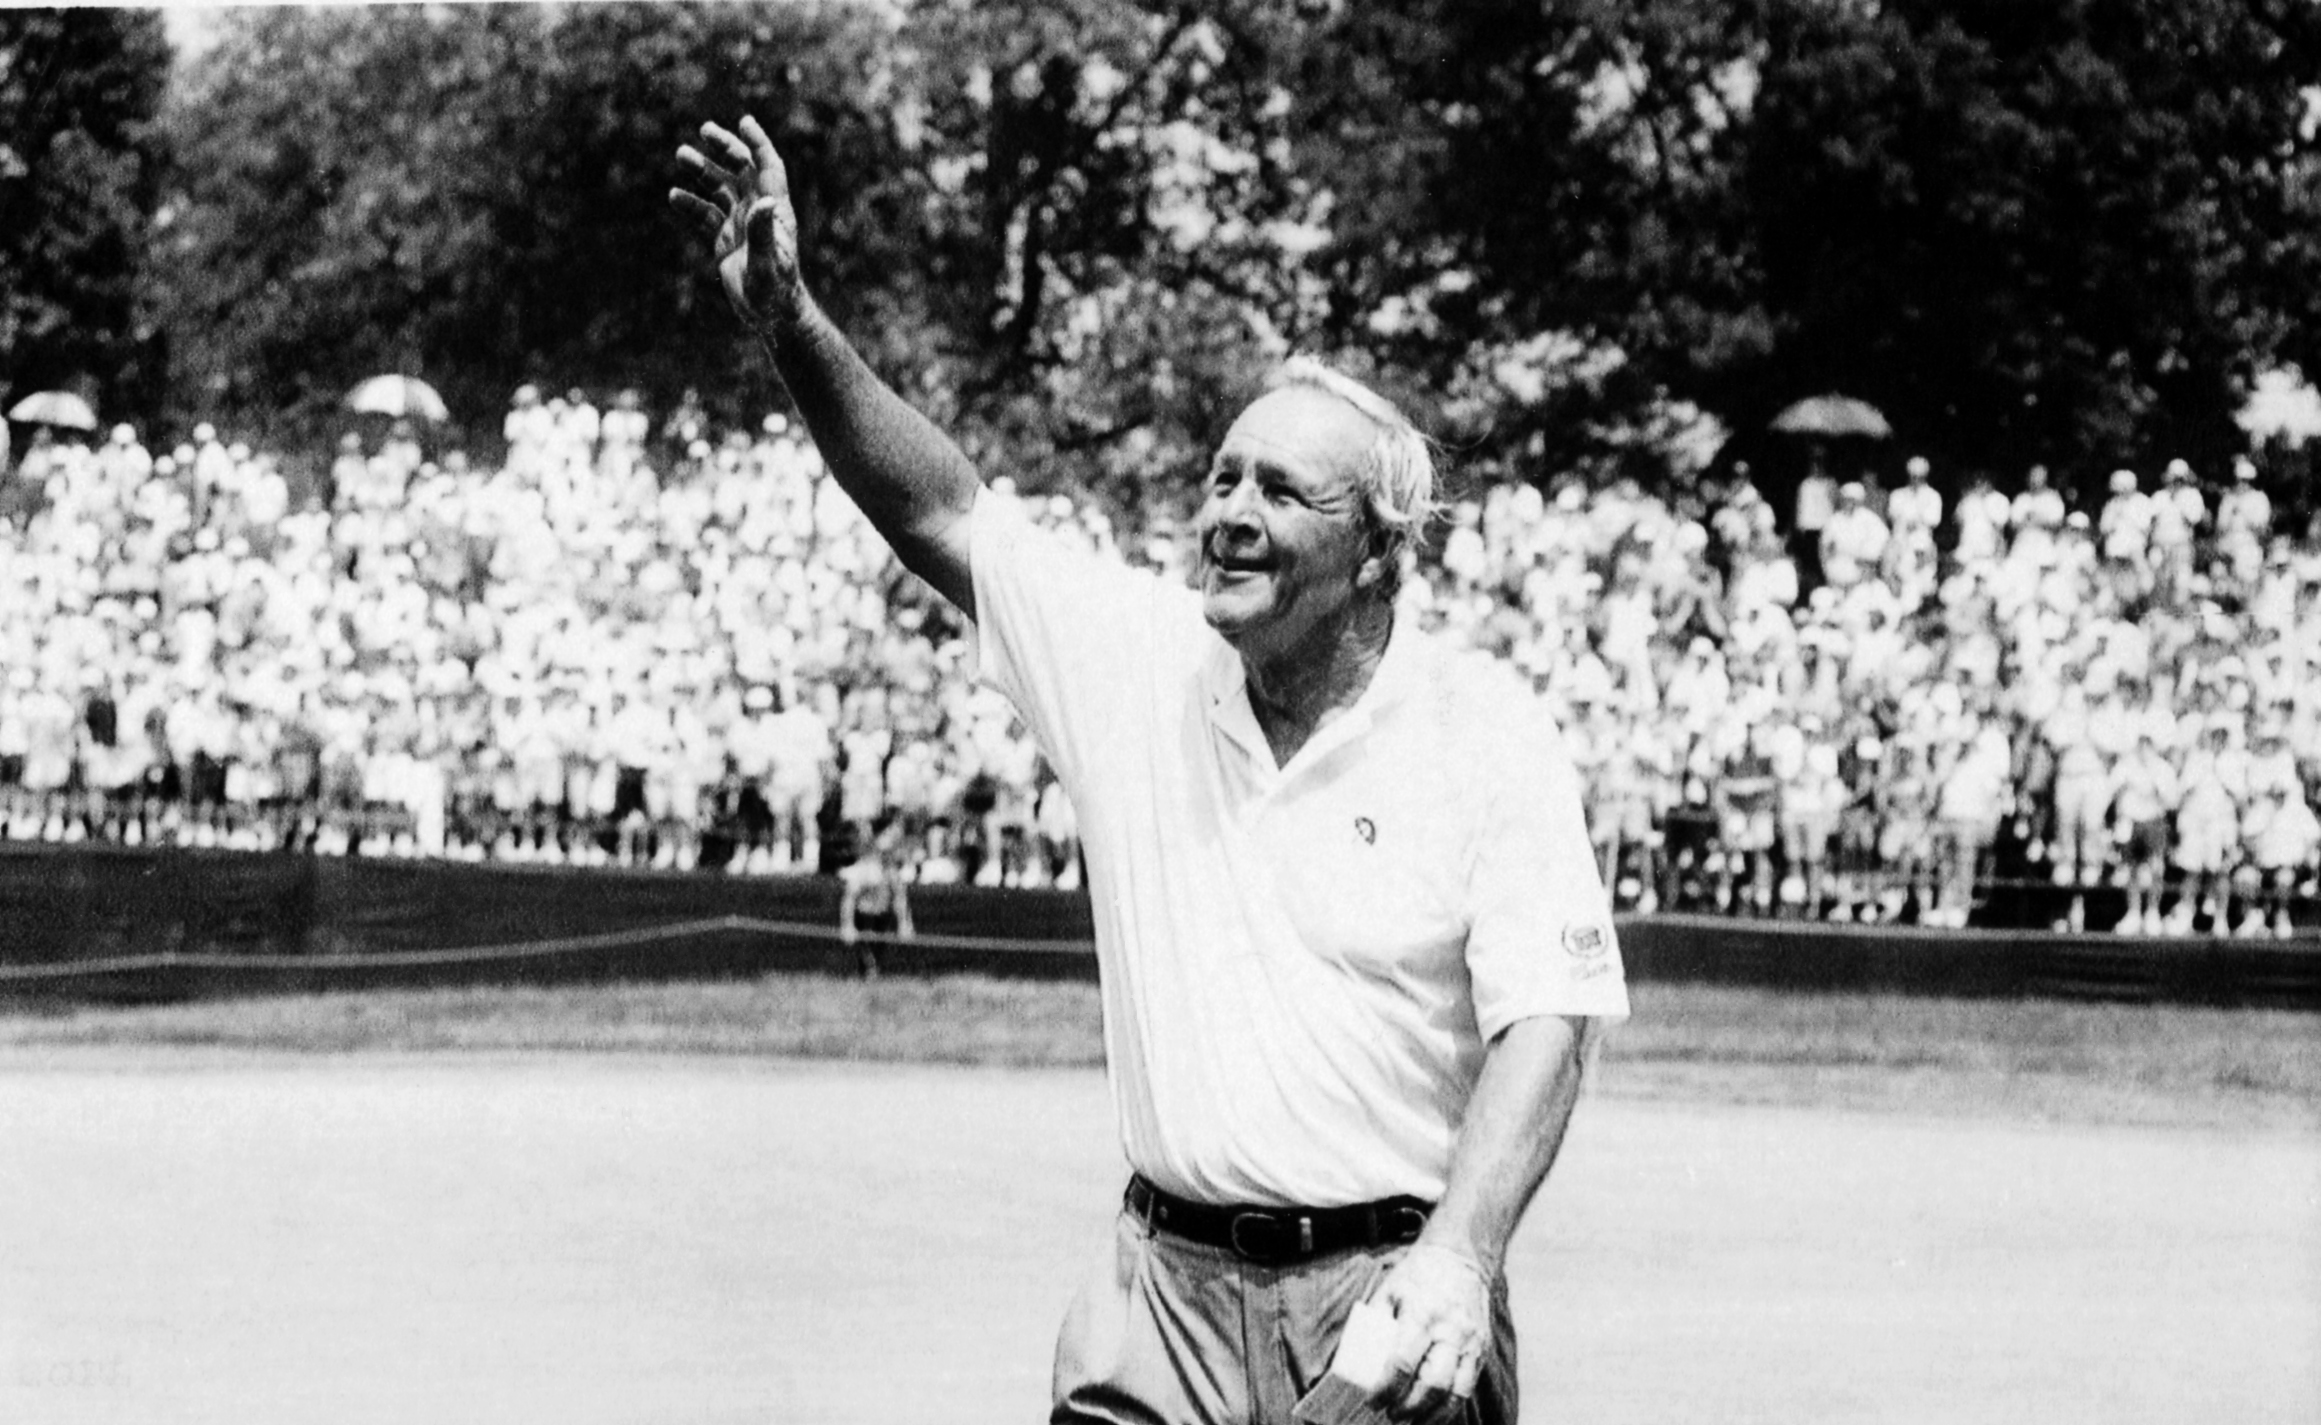 Arnold Palmer acknowledges fans at the 1994 U.S. Open. (Darrell Sapp/Post-Gazette)